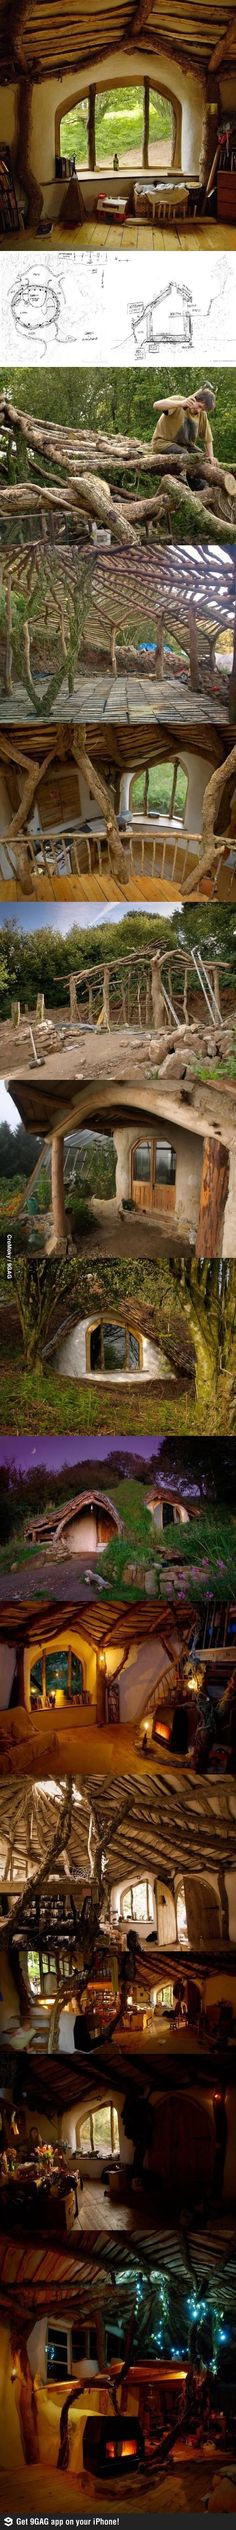 How to build a HOBBIT house: I think every one should live in a house like this. The world would be a much happier place. :-)